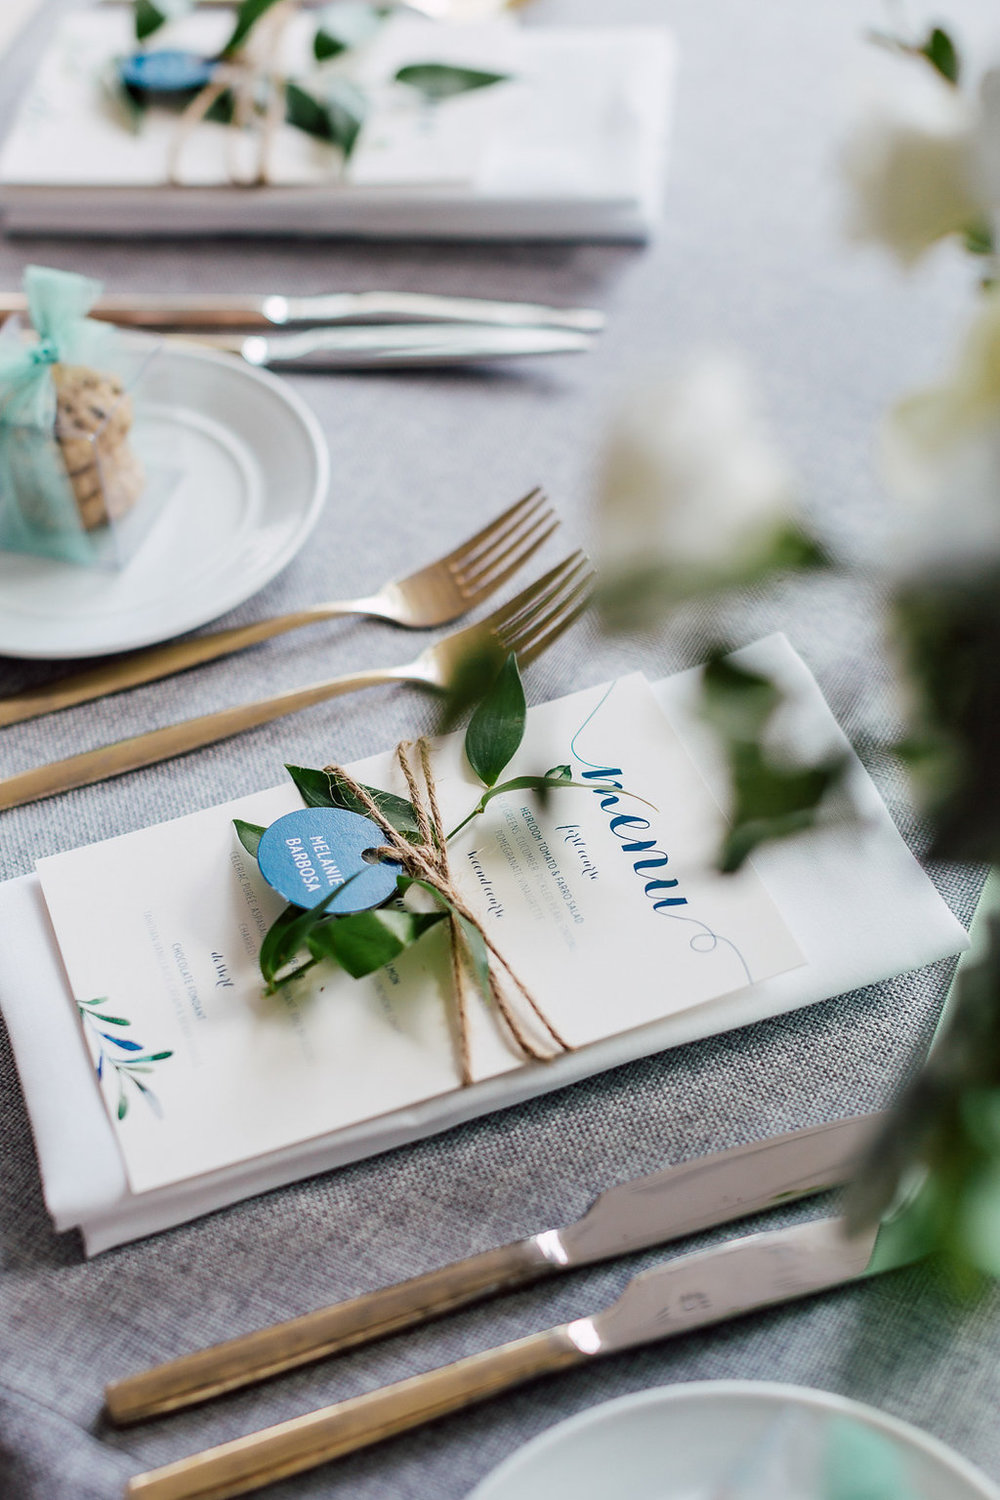 Chic botanical wedding – menu and place cards, custom designed by Silverplate Press